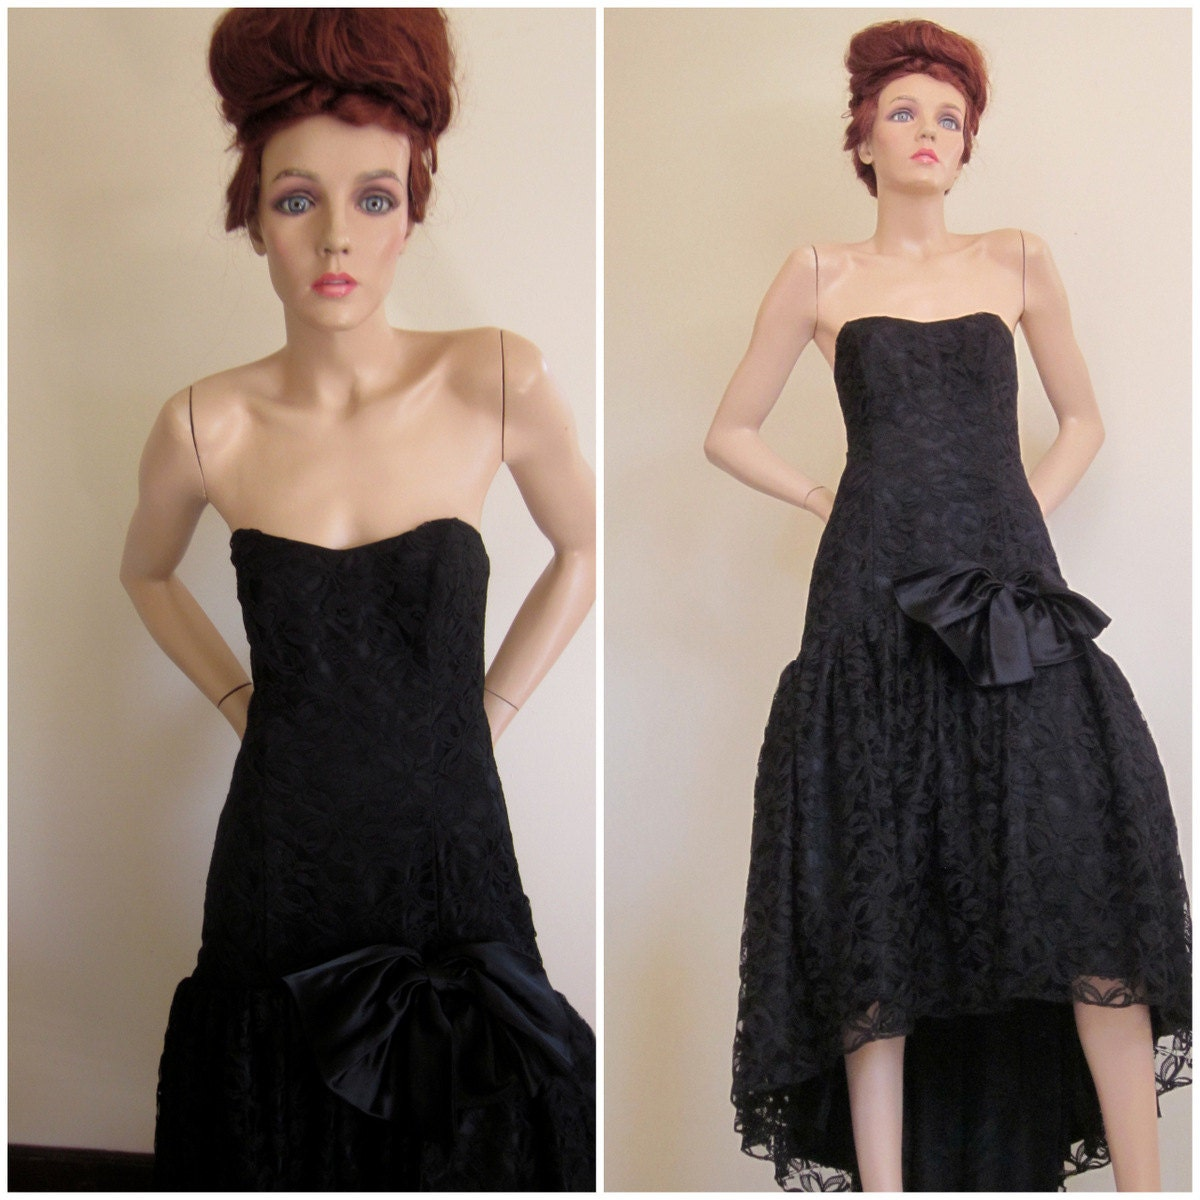 Alfred Angelo: The 80s Prom Dresses / Alfred Angelo / Alfred Angelo Dress